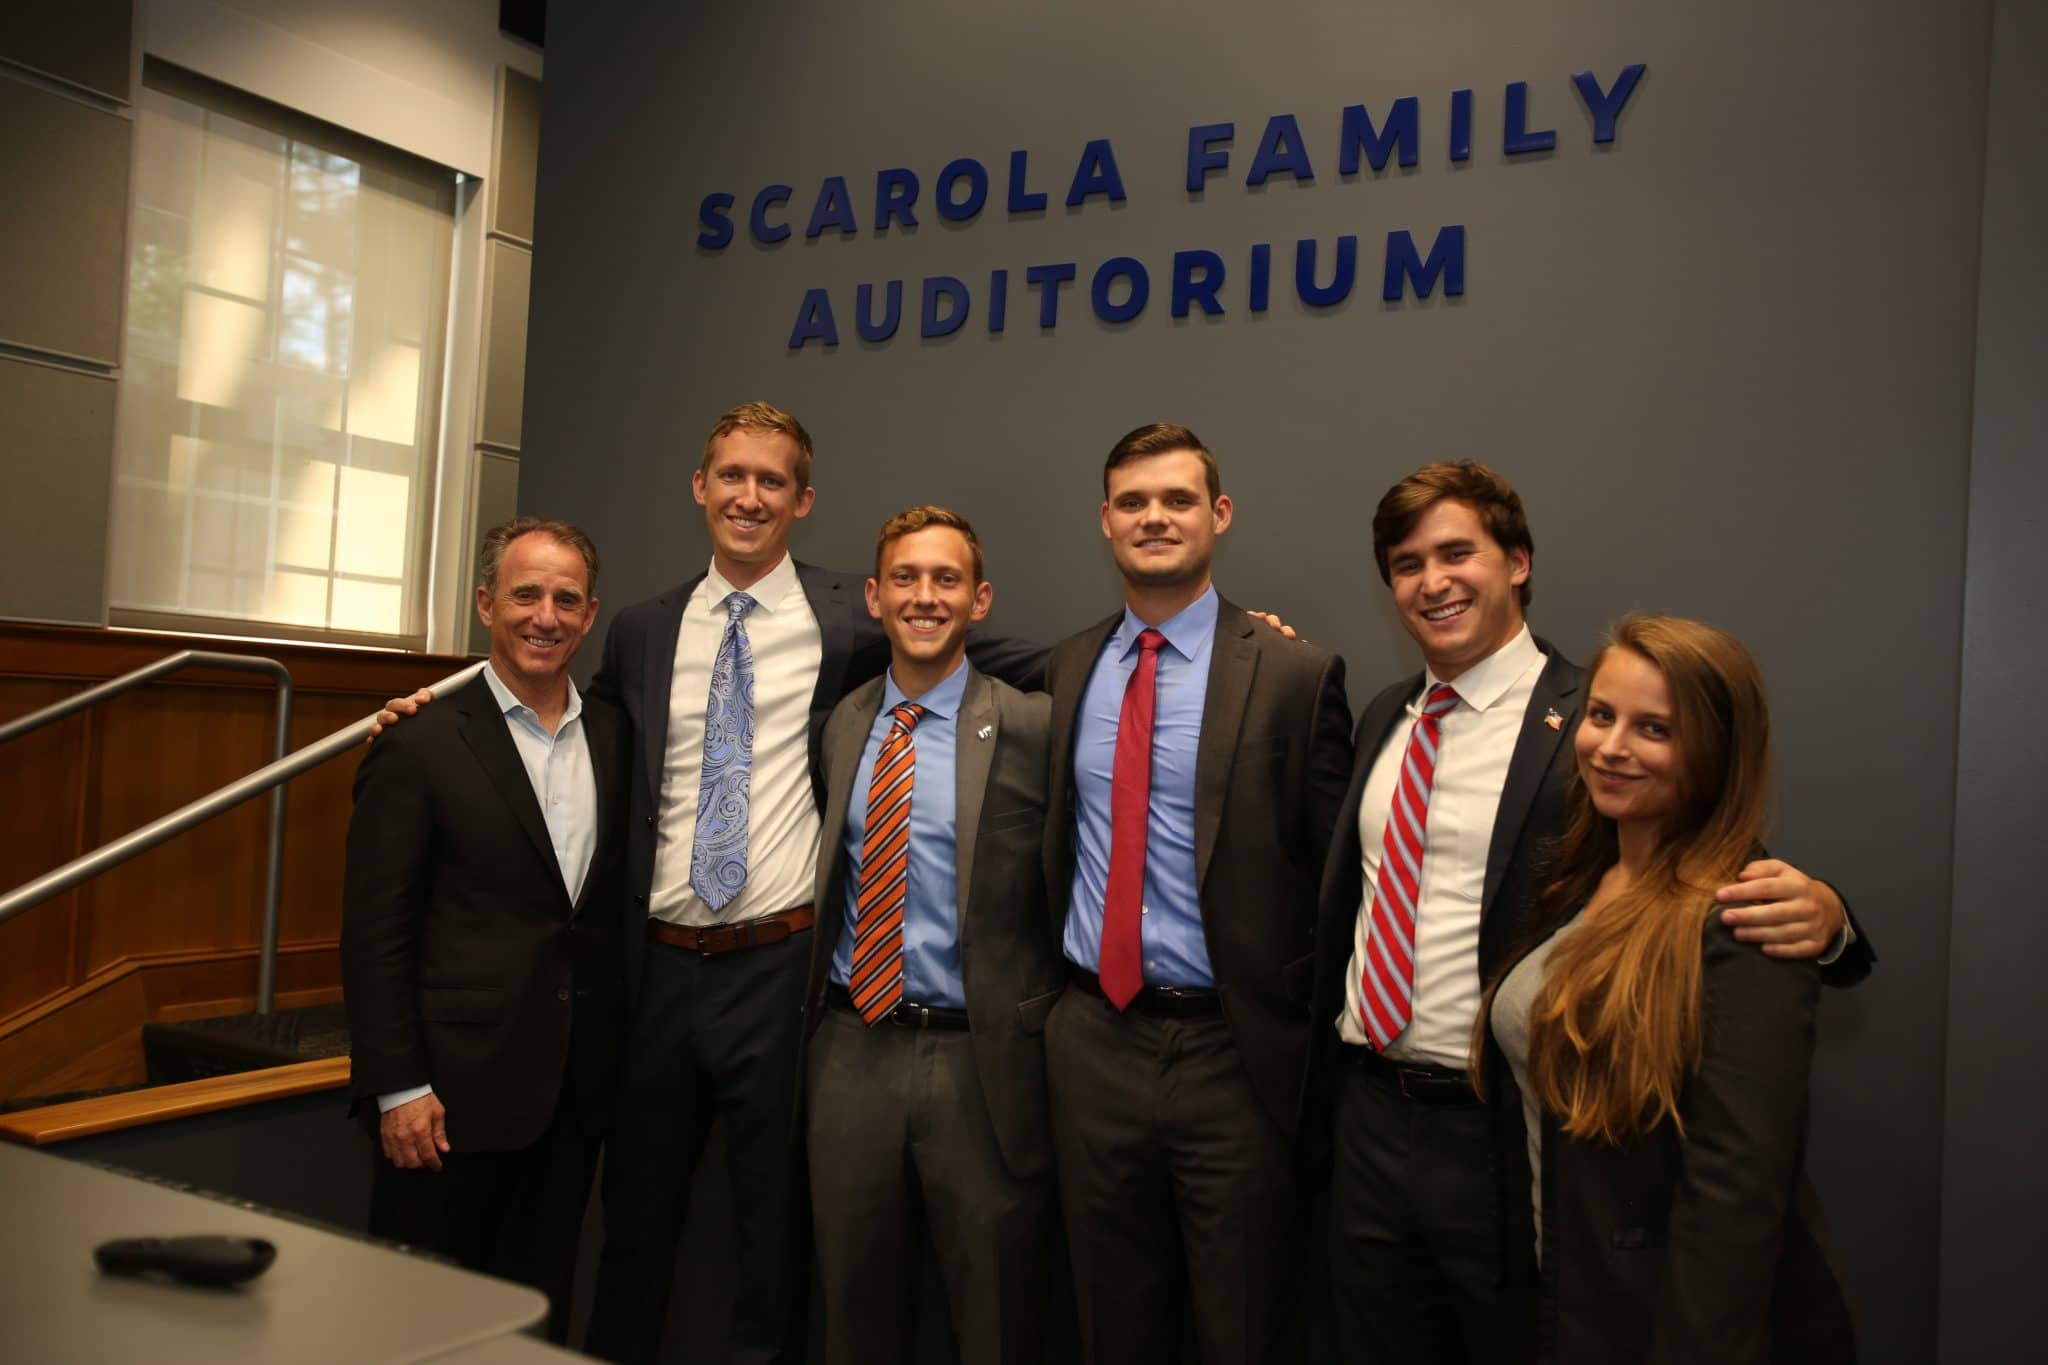 Rick Scarola with five students posing for a photo in front of the Scarola Family Auditorium sign